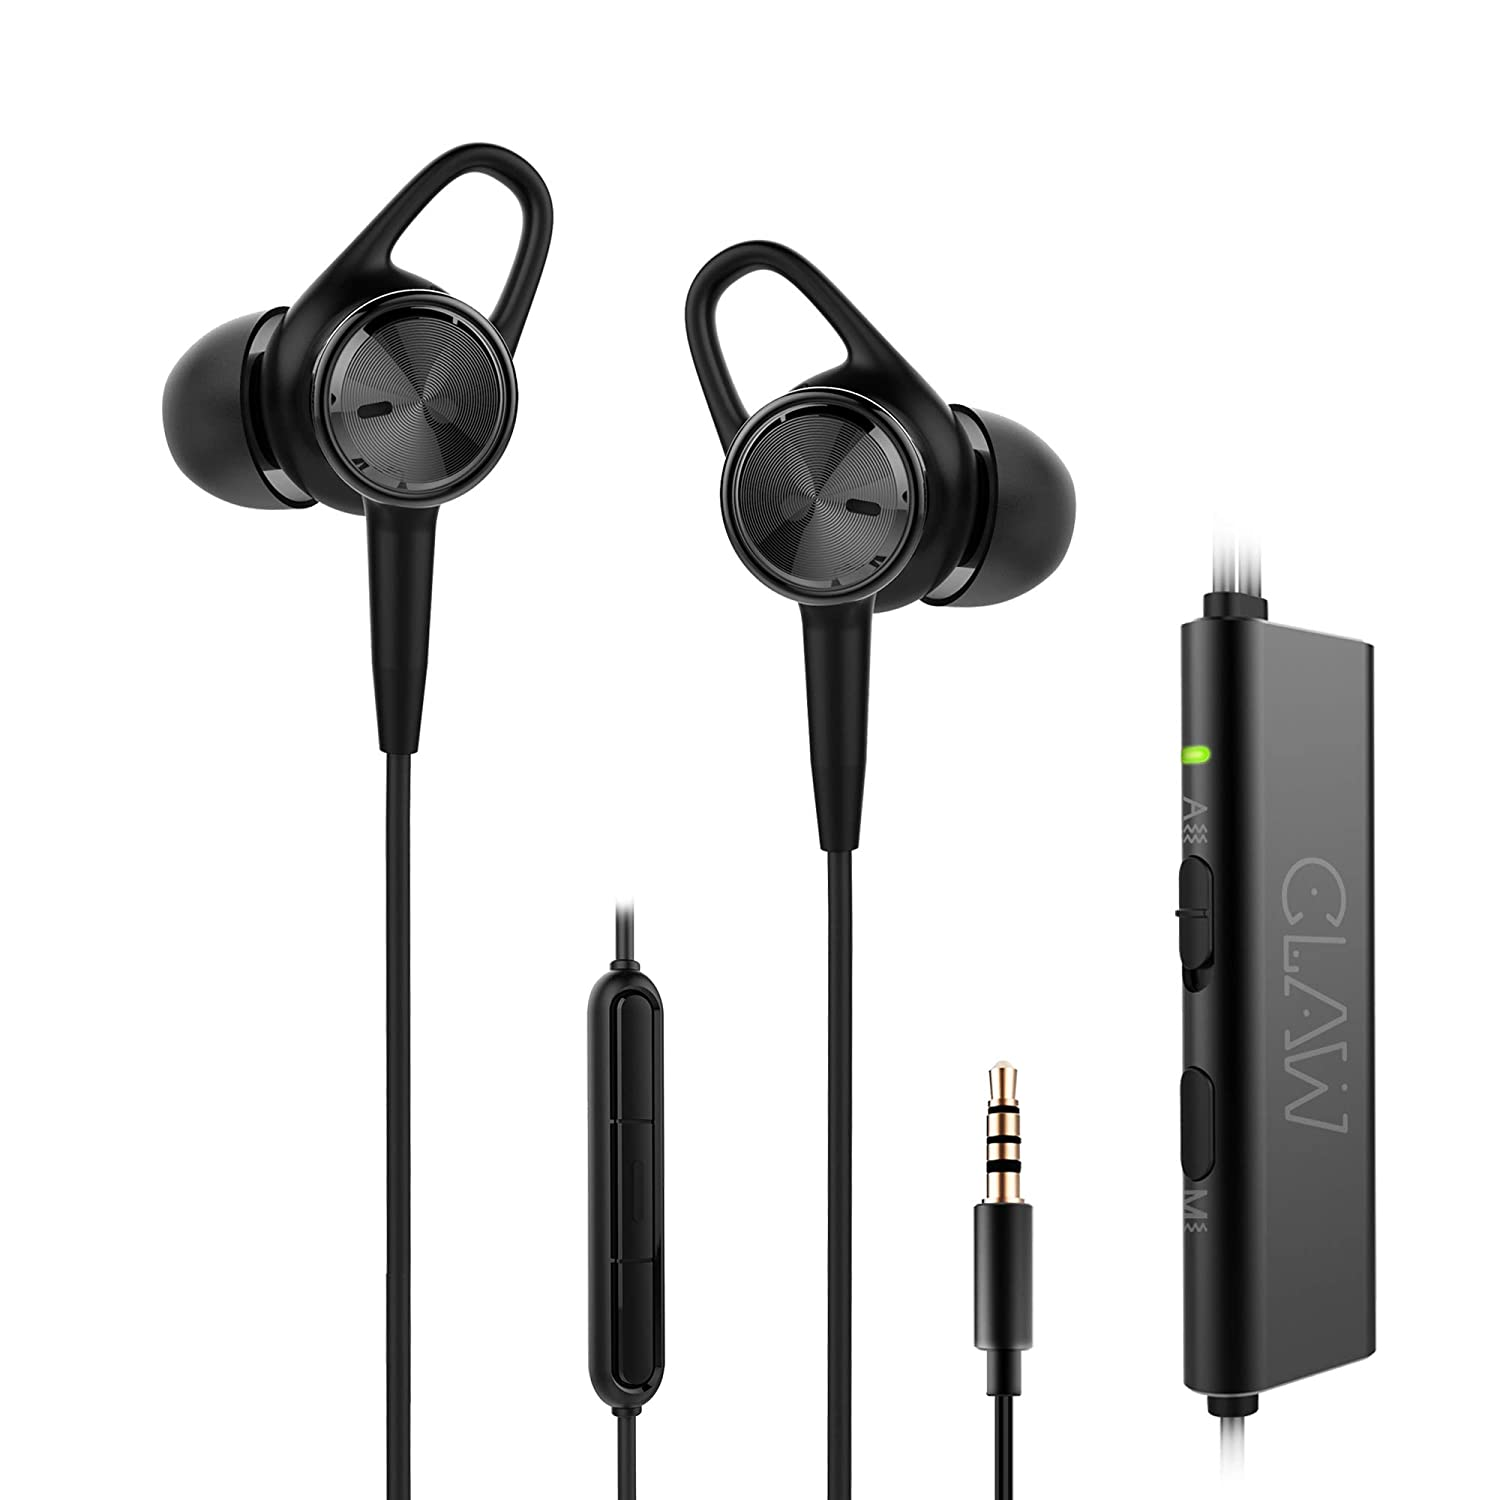 CLAW ANC7 Active Noise Cancelling Earphones With Microphone